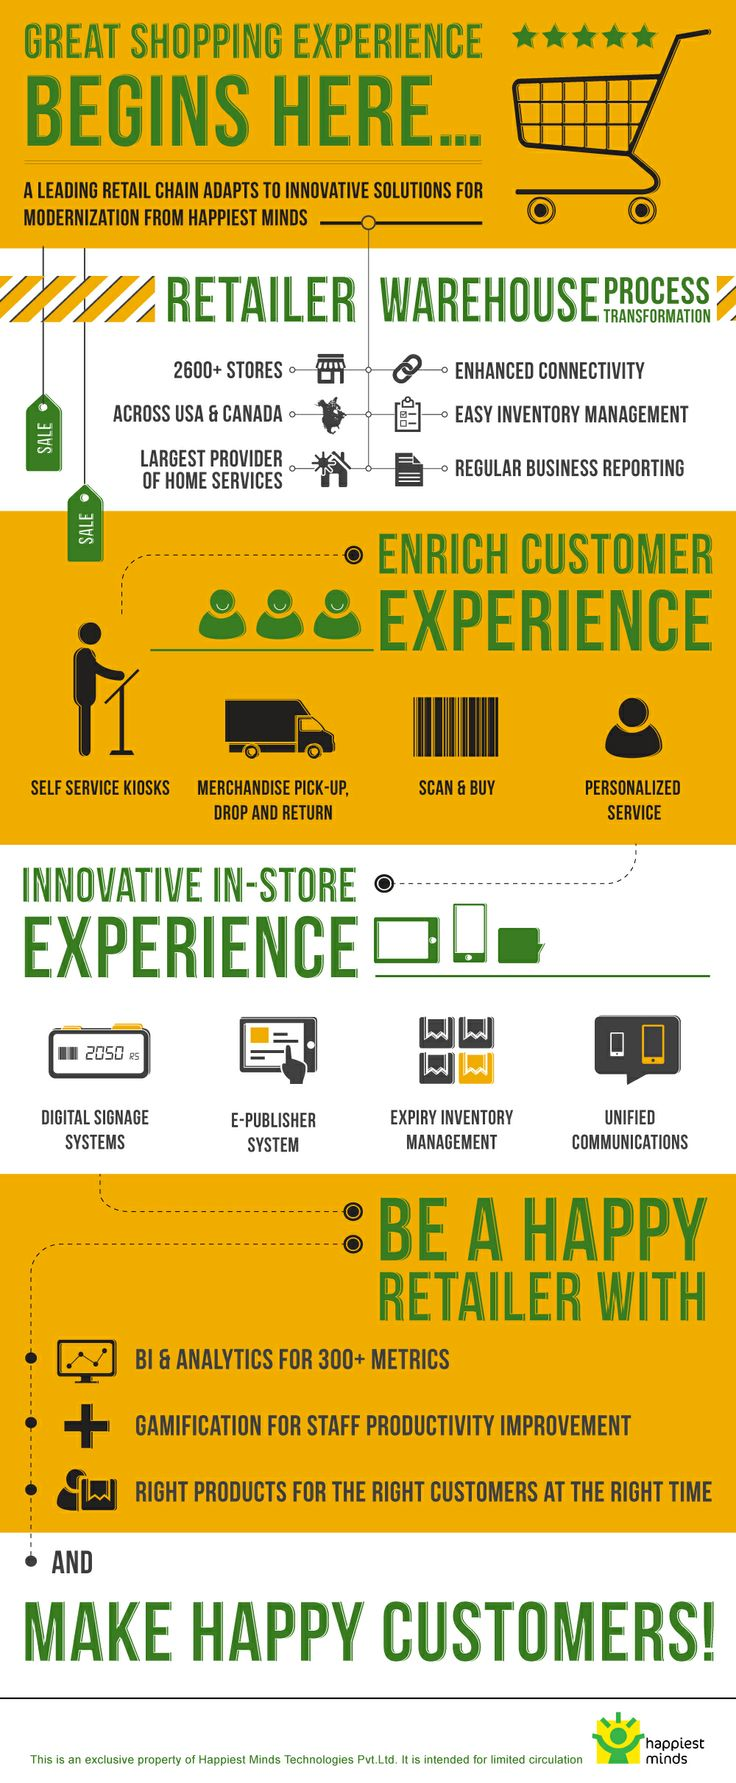 Great shopping experience begins here! #Retail #Infographics. For more, click here - http://bit.ly/HMRetail